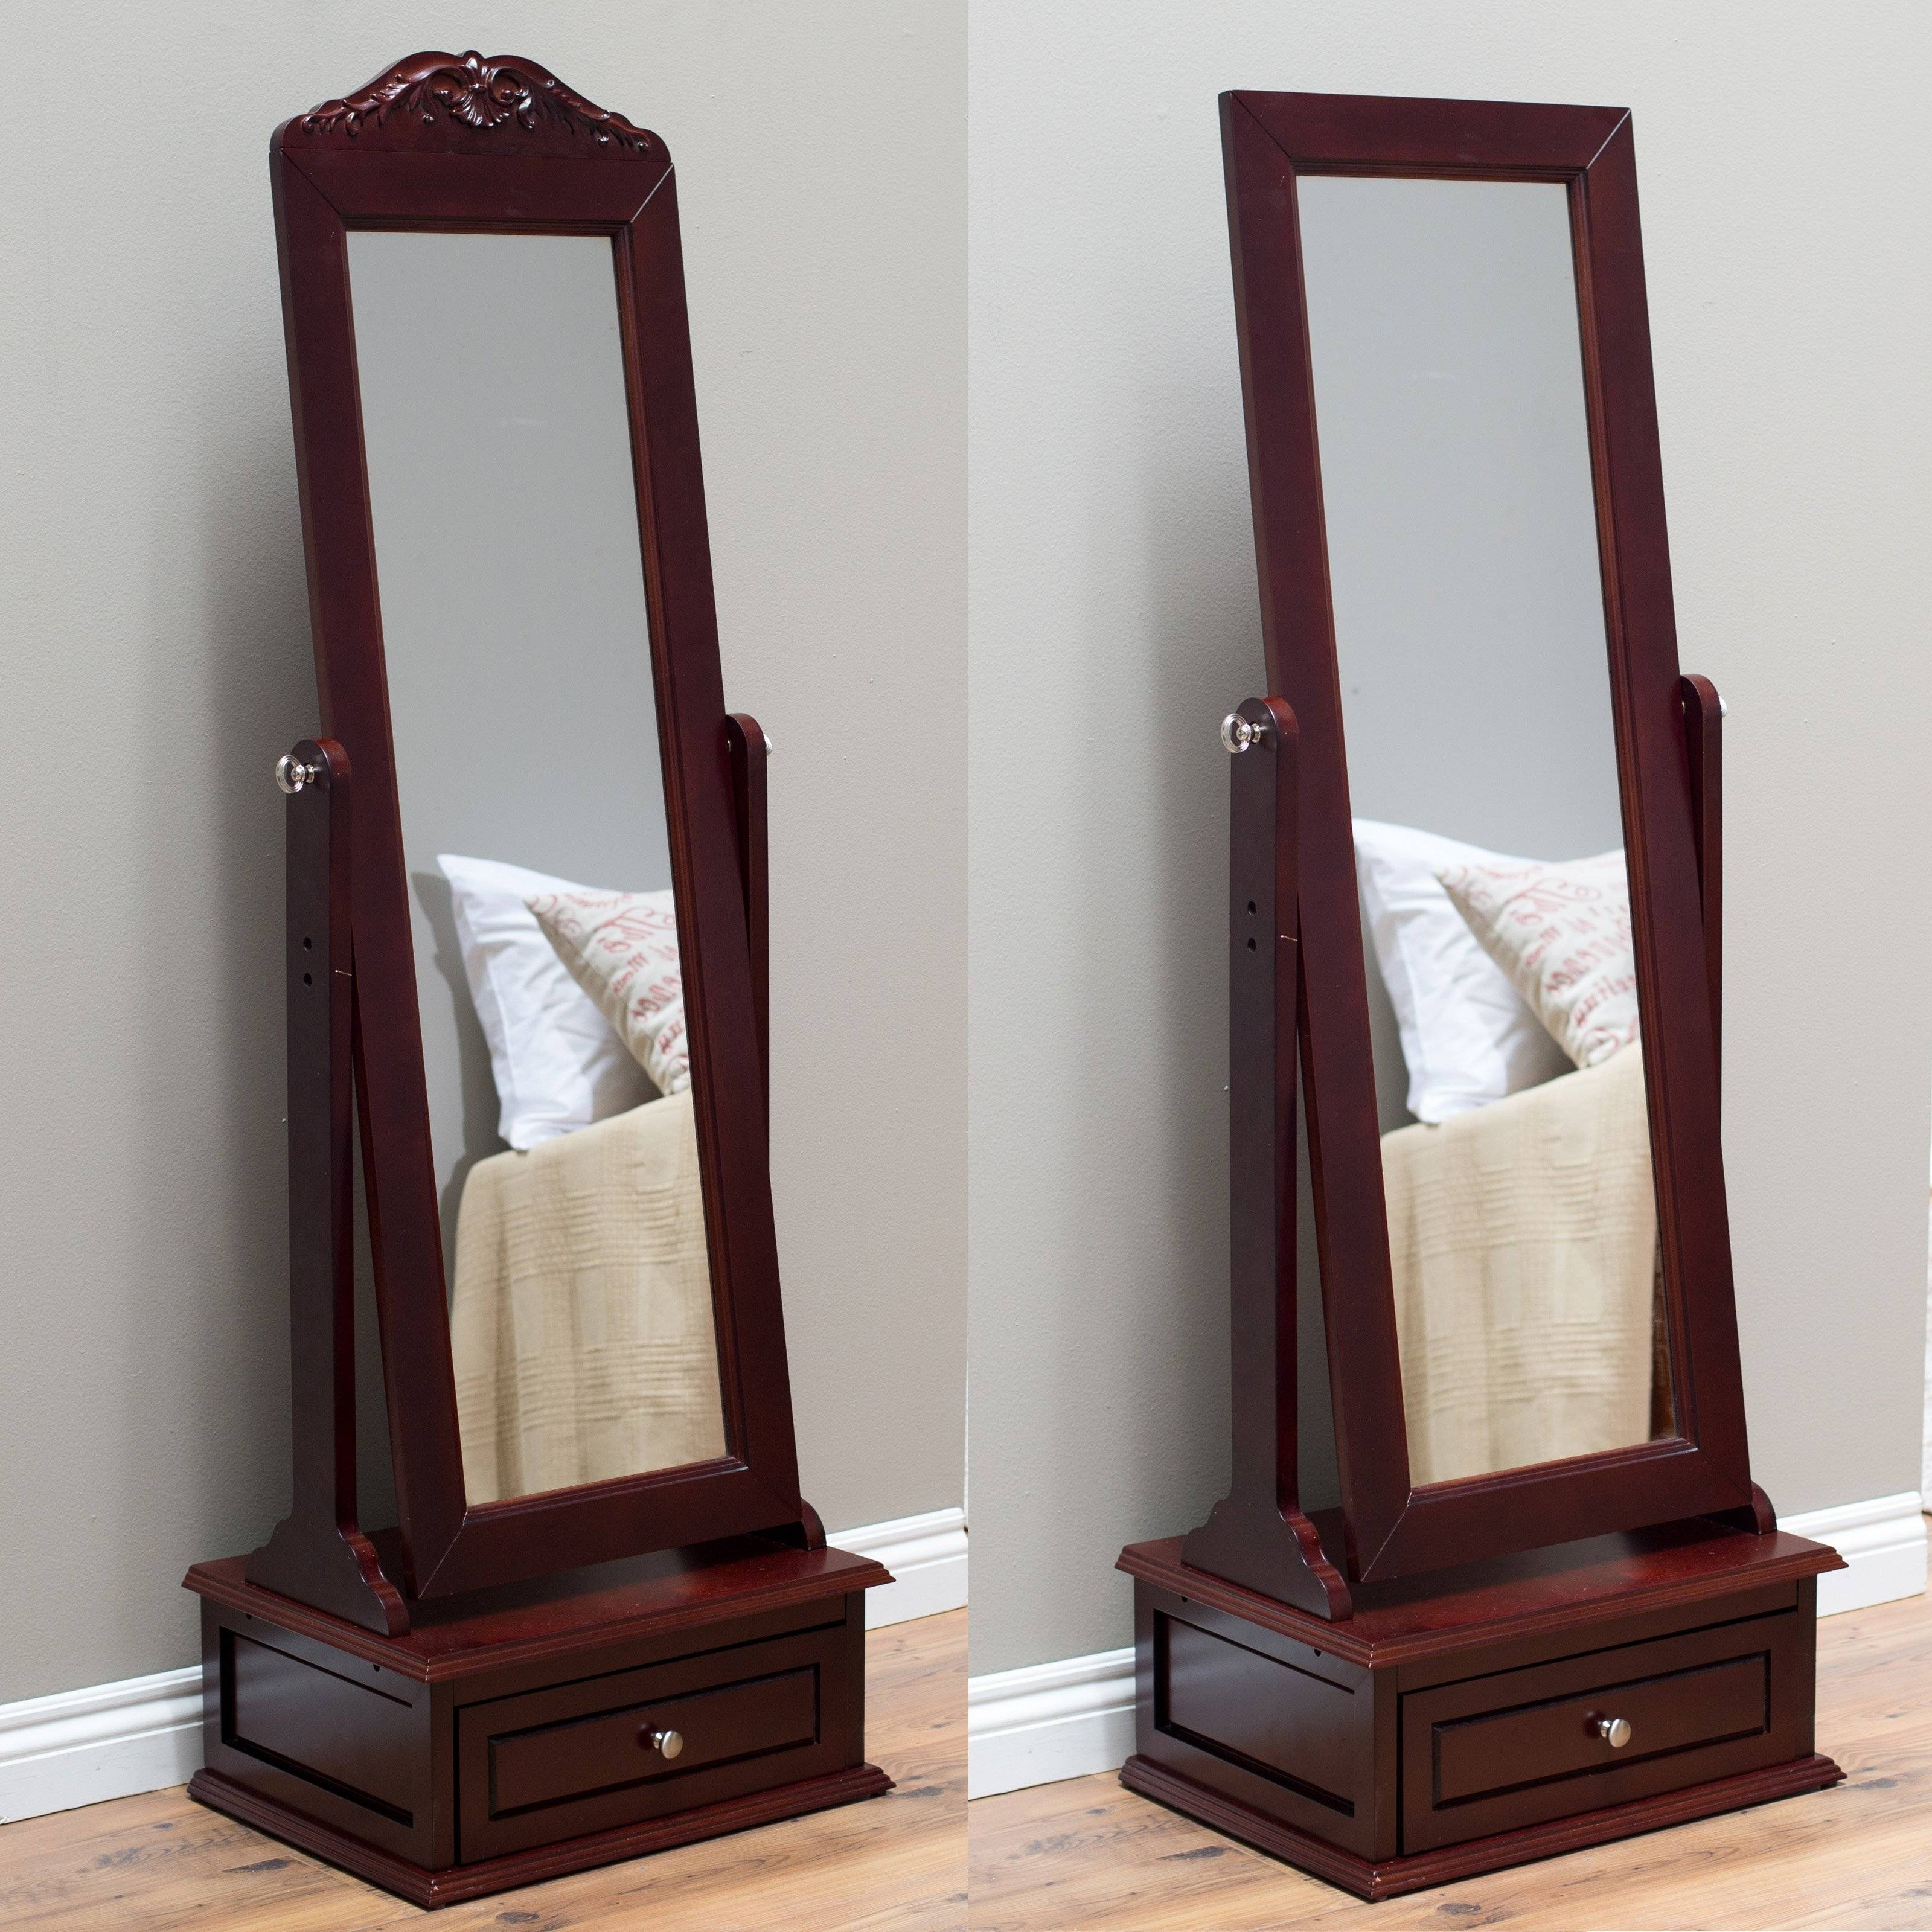 Belham Living Removable Decorative Top Cheval Mirror - Cherry inside Cheval Mirrors (Image 6 of 25)